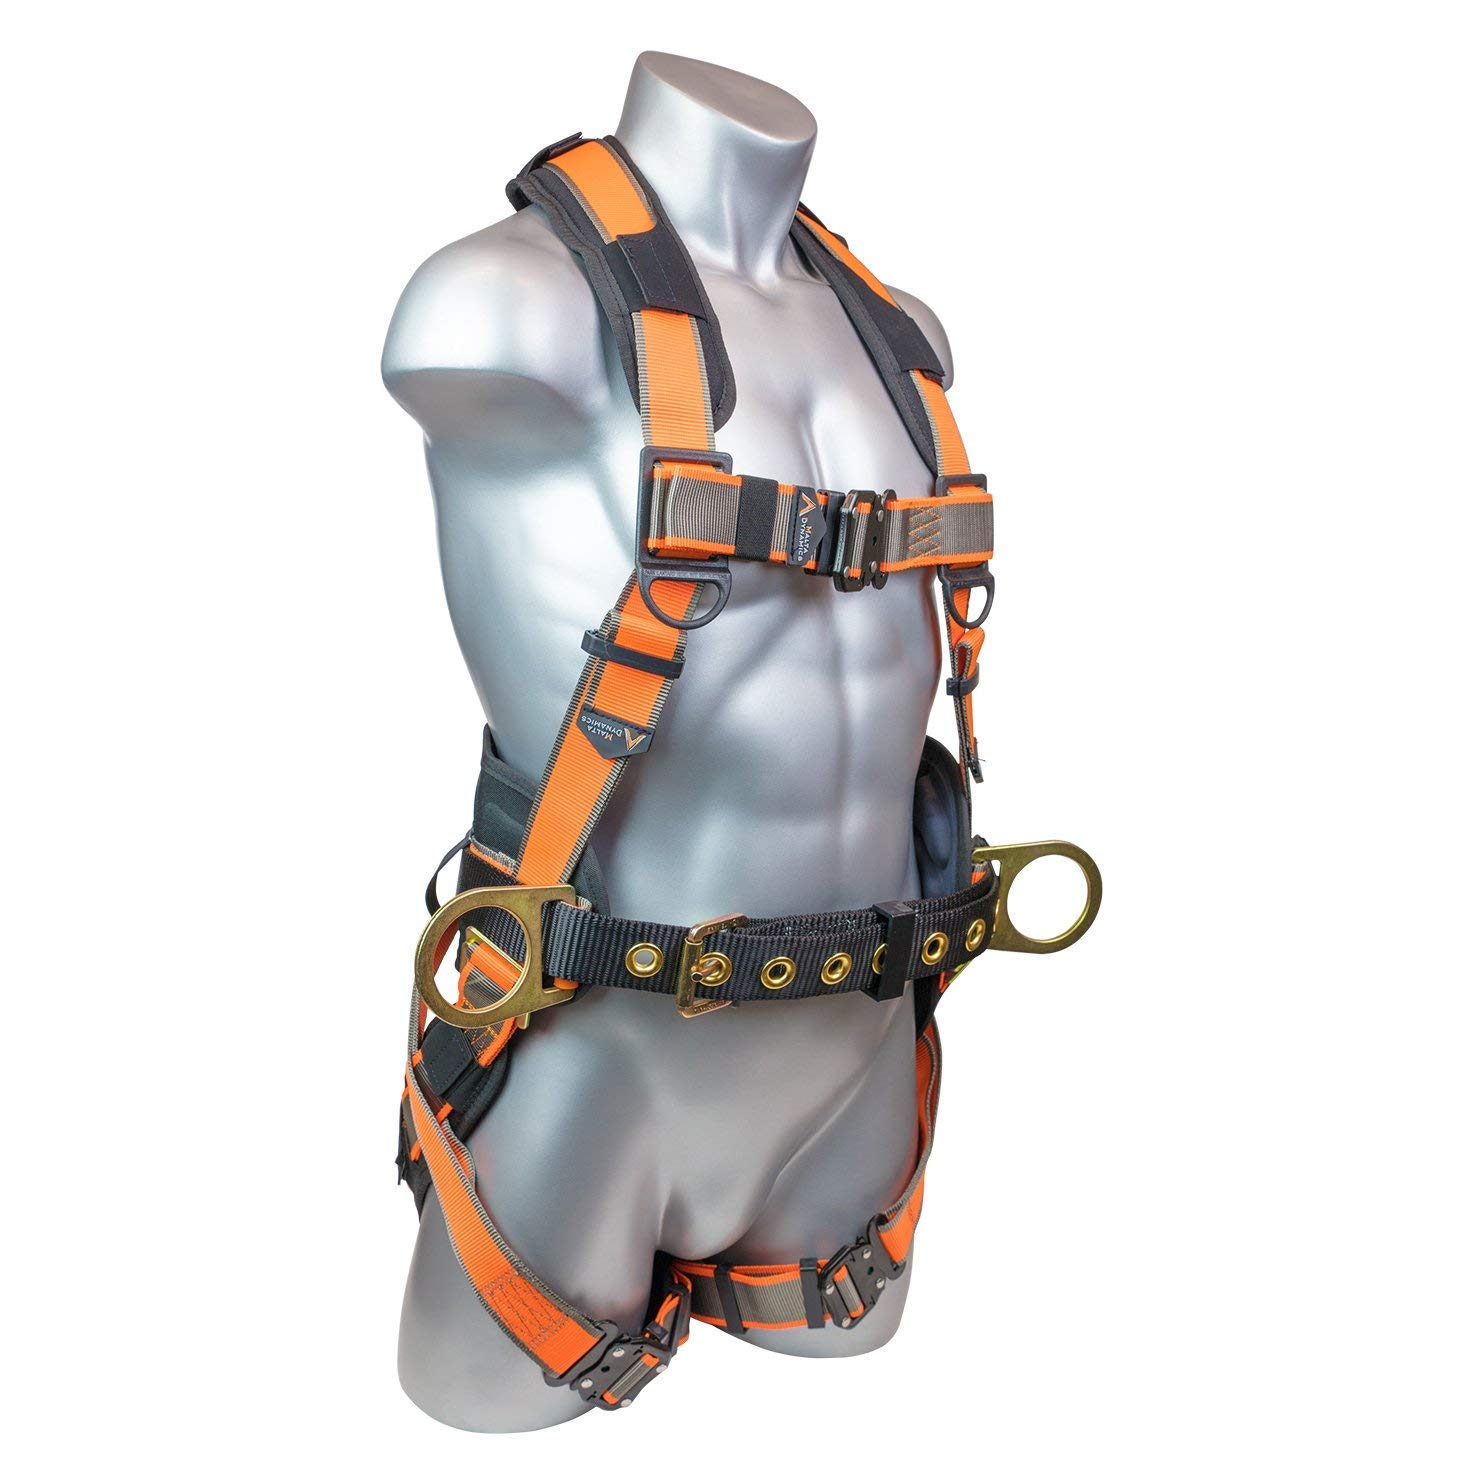 Warthog Comfort MAXX Construction Harness with Removable Belt, Side D-Rings and Additional Thick Padding (XL-XXL), OSHA/ANSI Compliant by Malta Dynamics